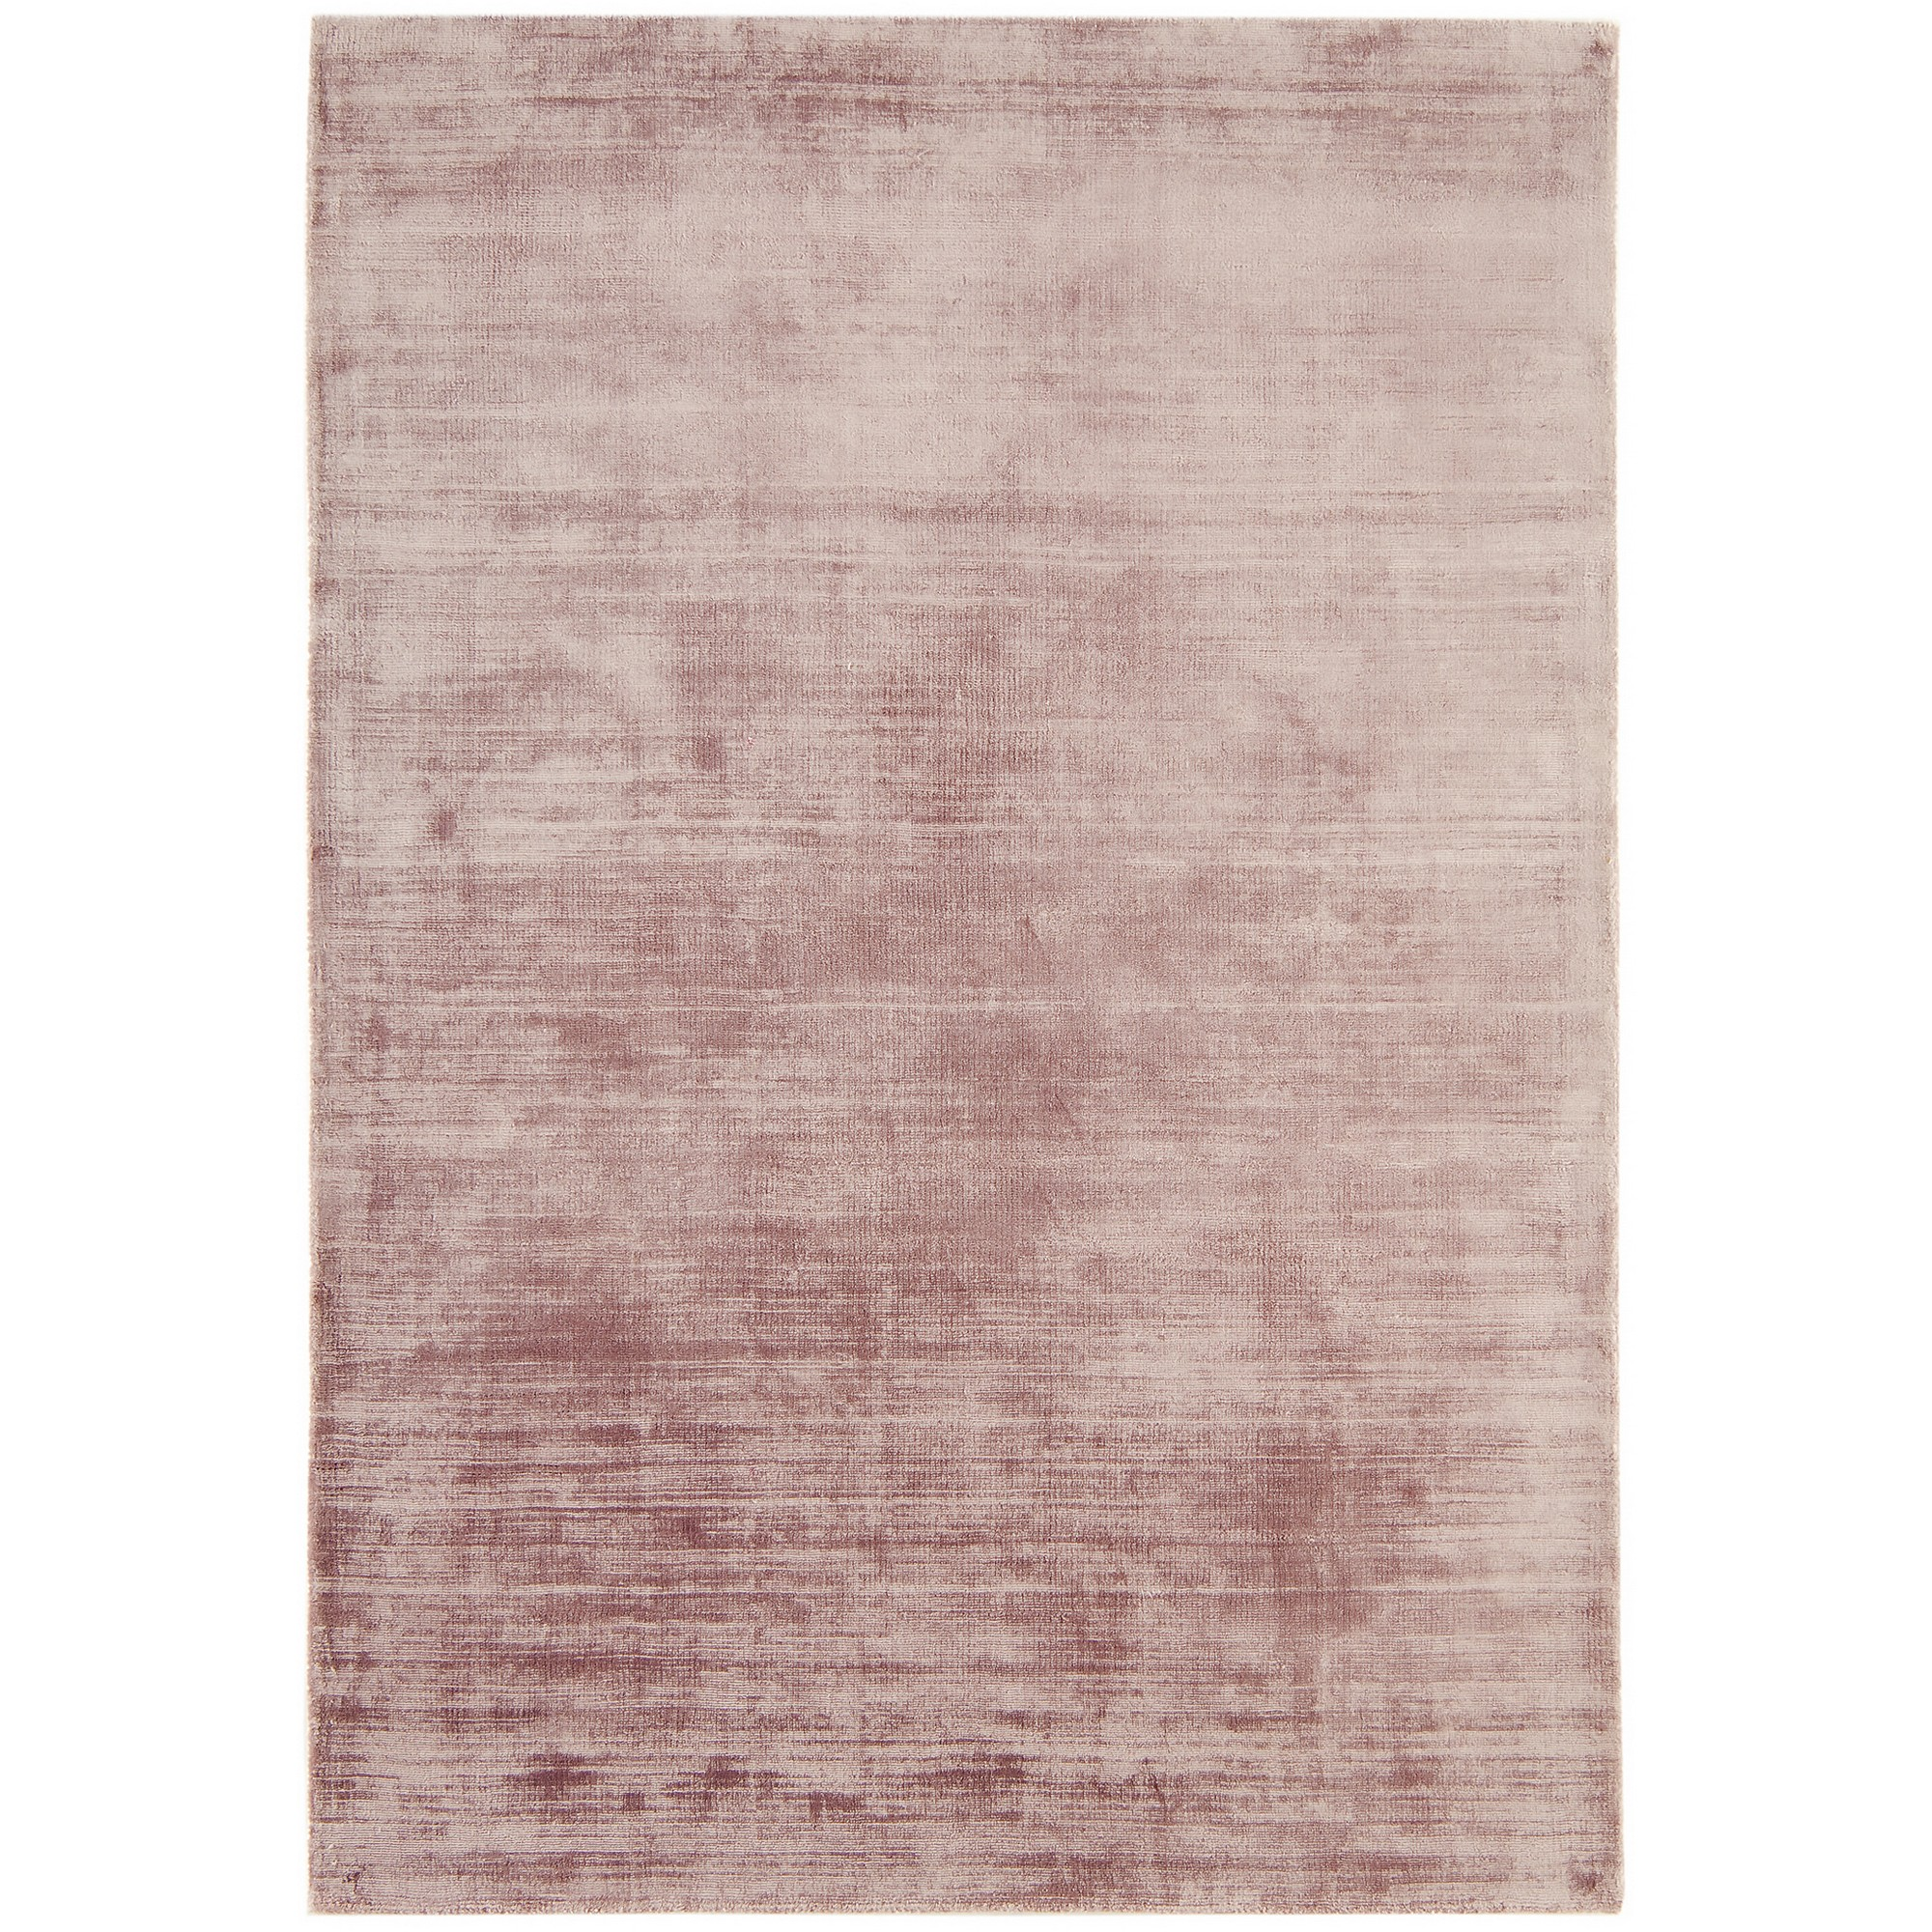 Blade Plain Rugs in Heather